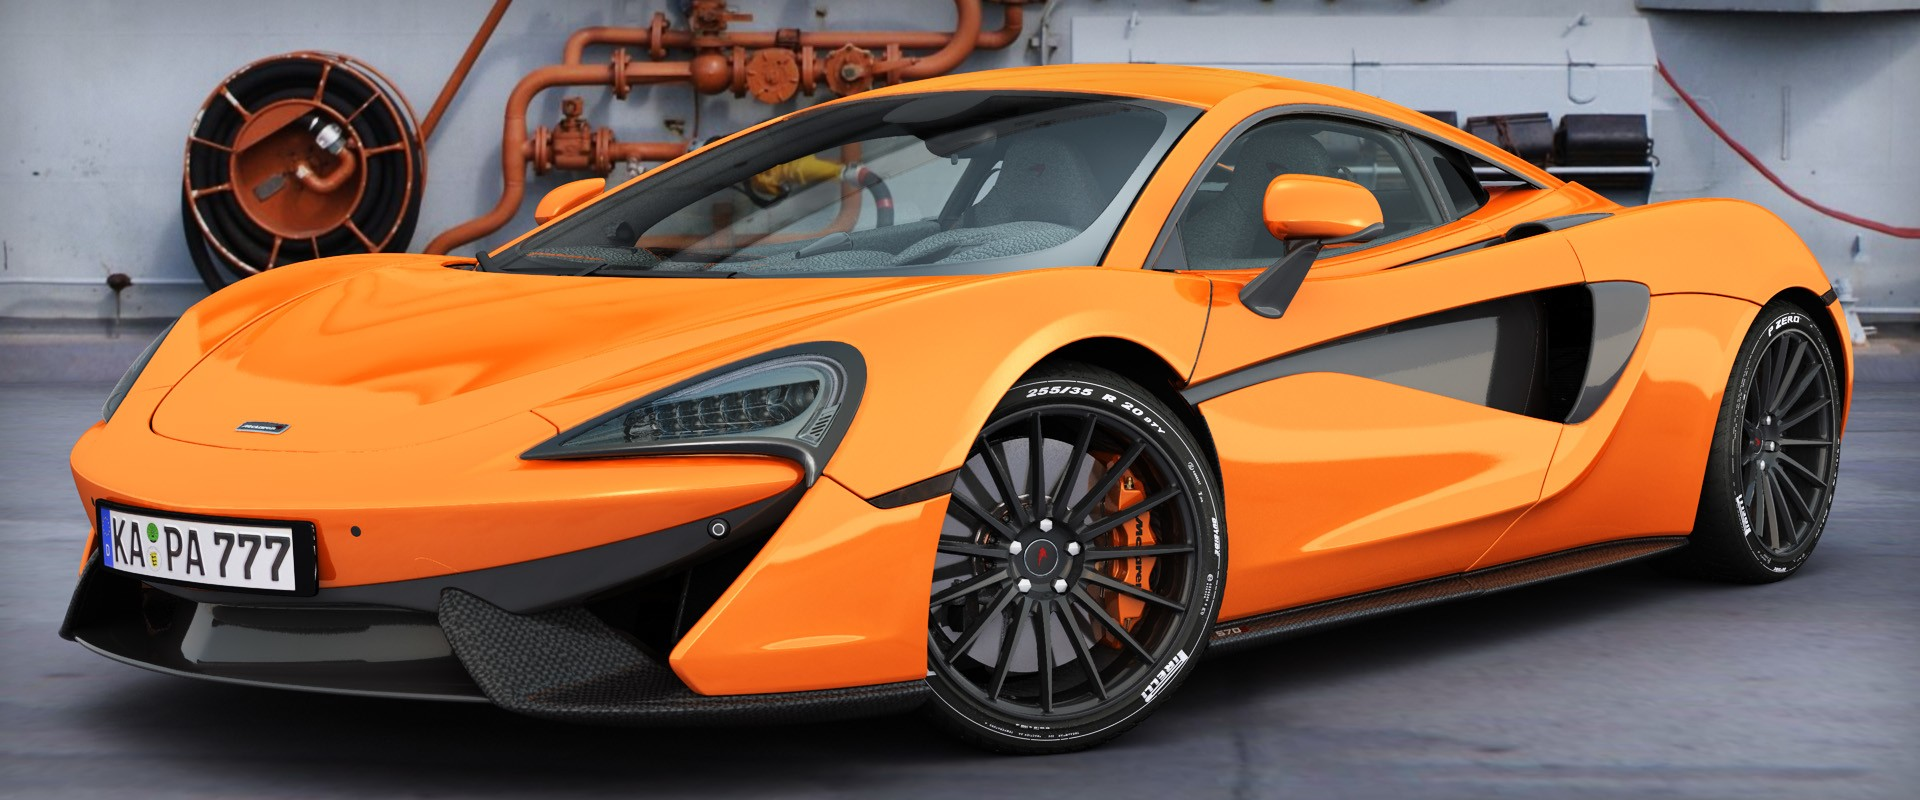 MC LAREN 570S-2 par angelesteban